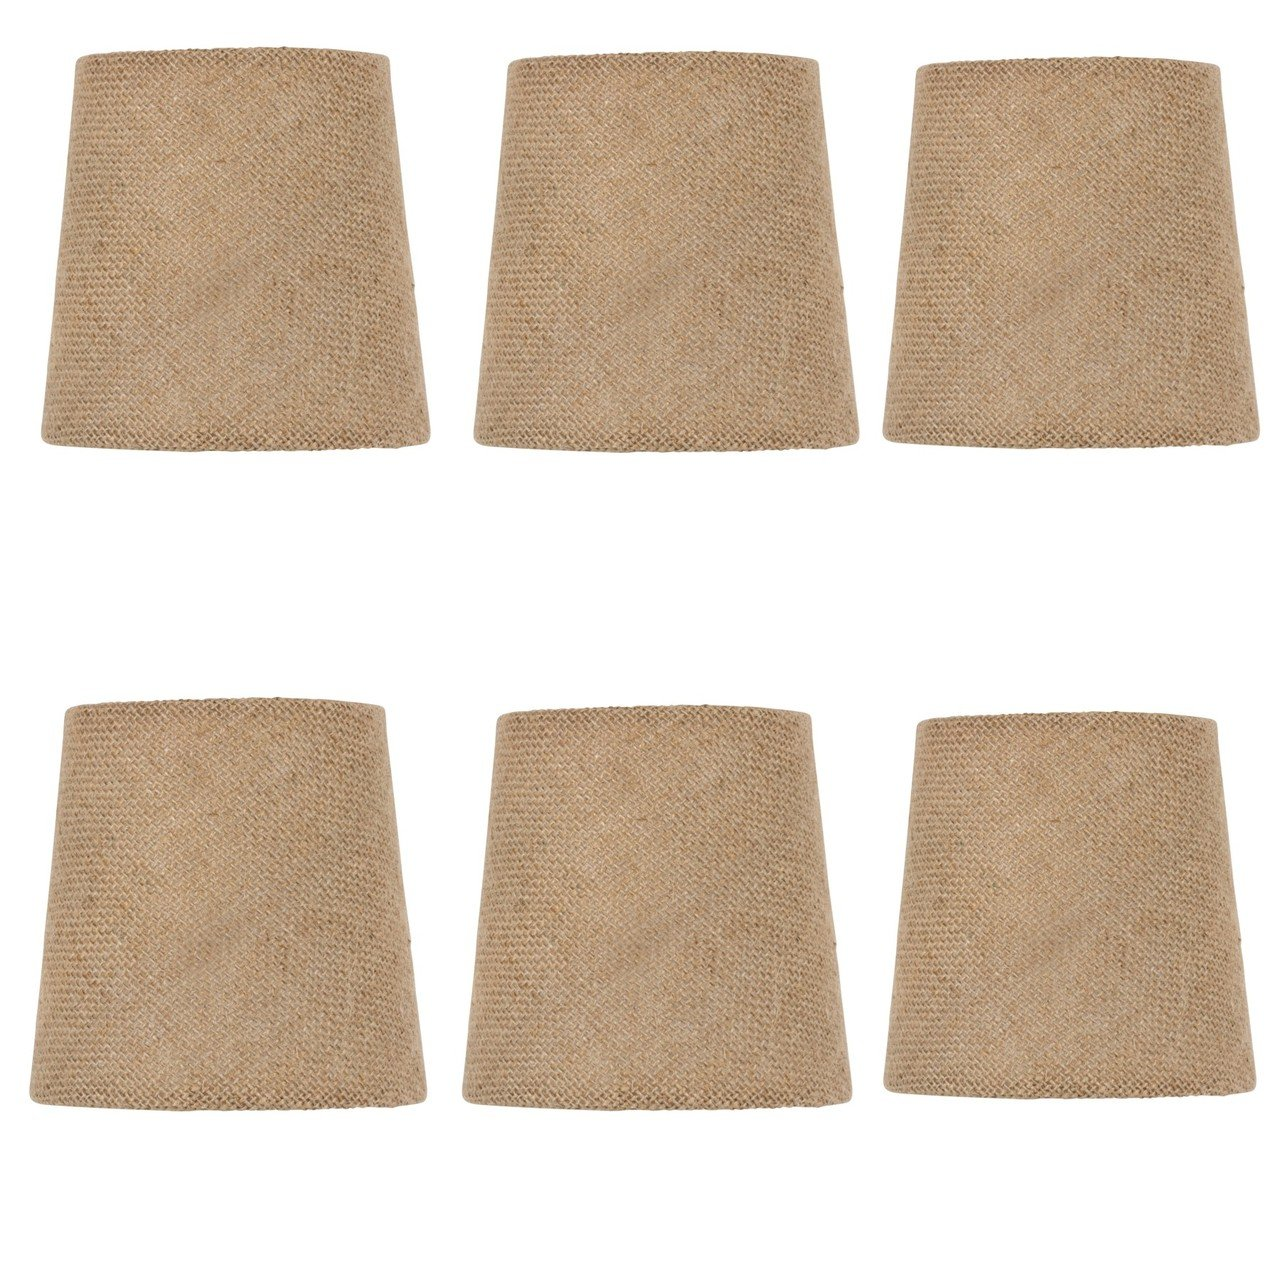 Upgradelights set of 6 rolled edge burlap drum chandelier shades 5 upgradelights set of 6 rolled edge burlap drum chandelier shades 5 inch dia amazon mozeypictures Image collections